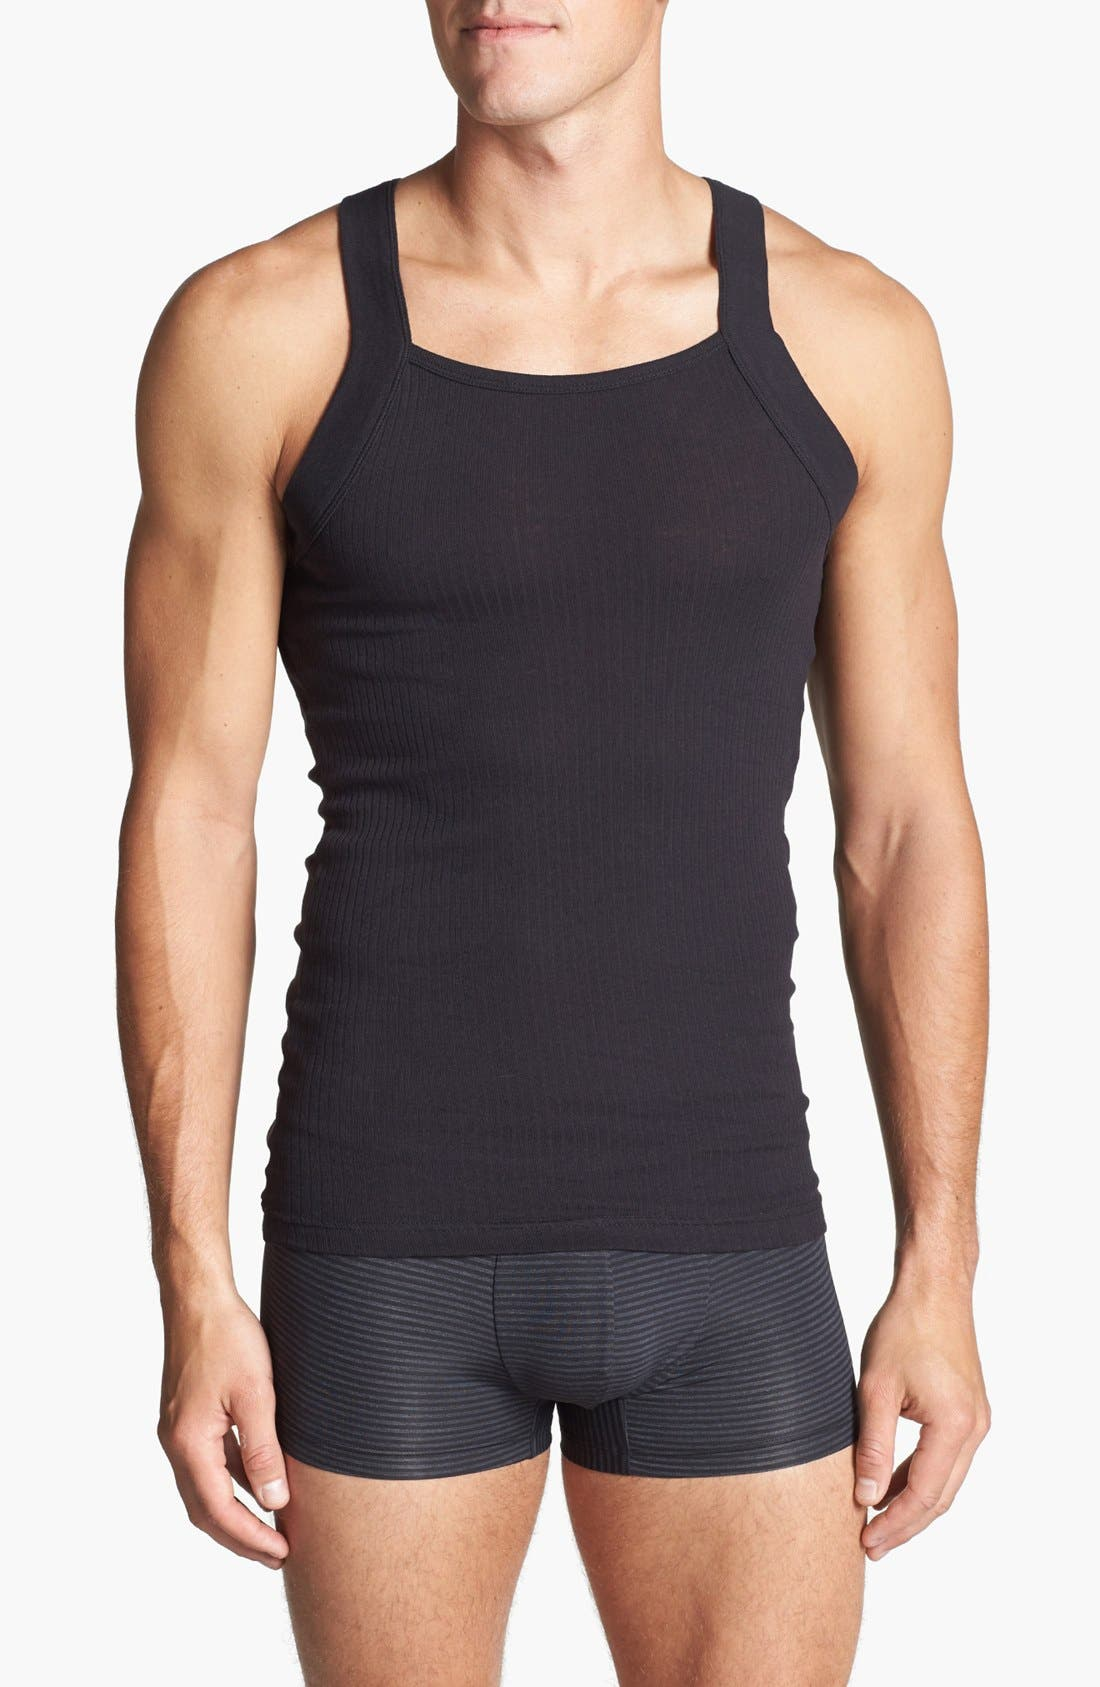 Main Image - 2(x)ist 2-Pack Cotton Tank Top